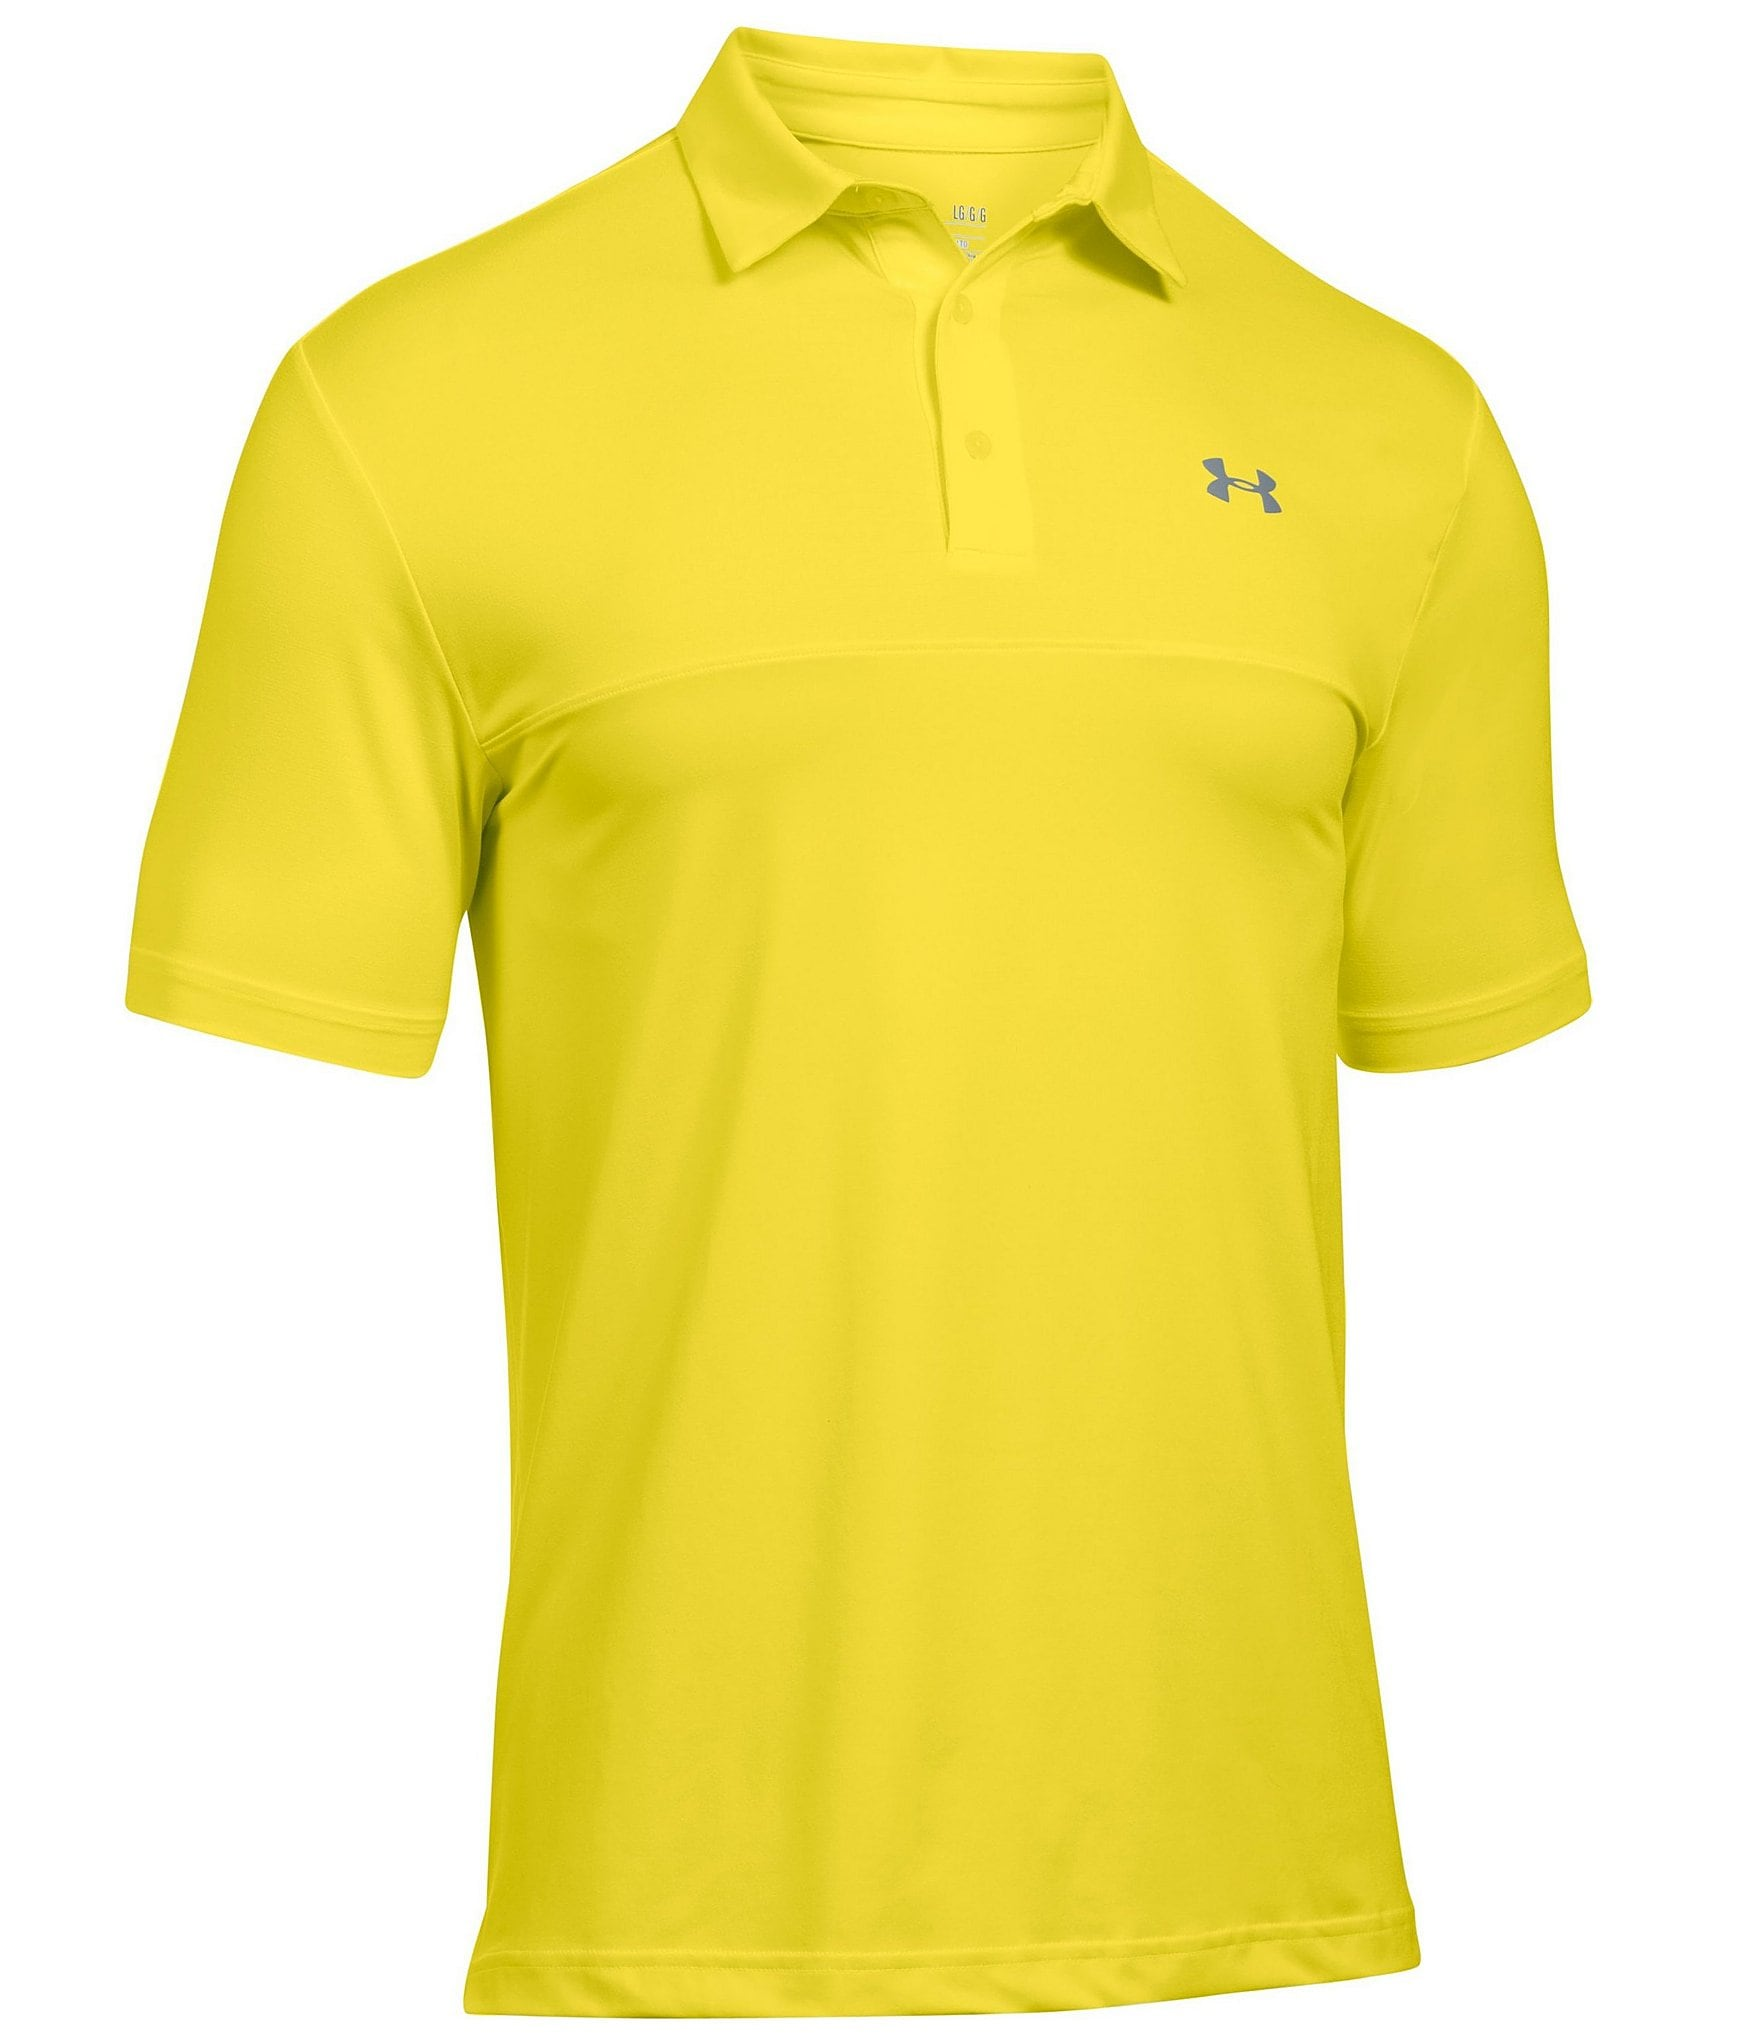 f3cac08c Cheap under armour polo shirts clearance Buy Online >OFF55% Discounted